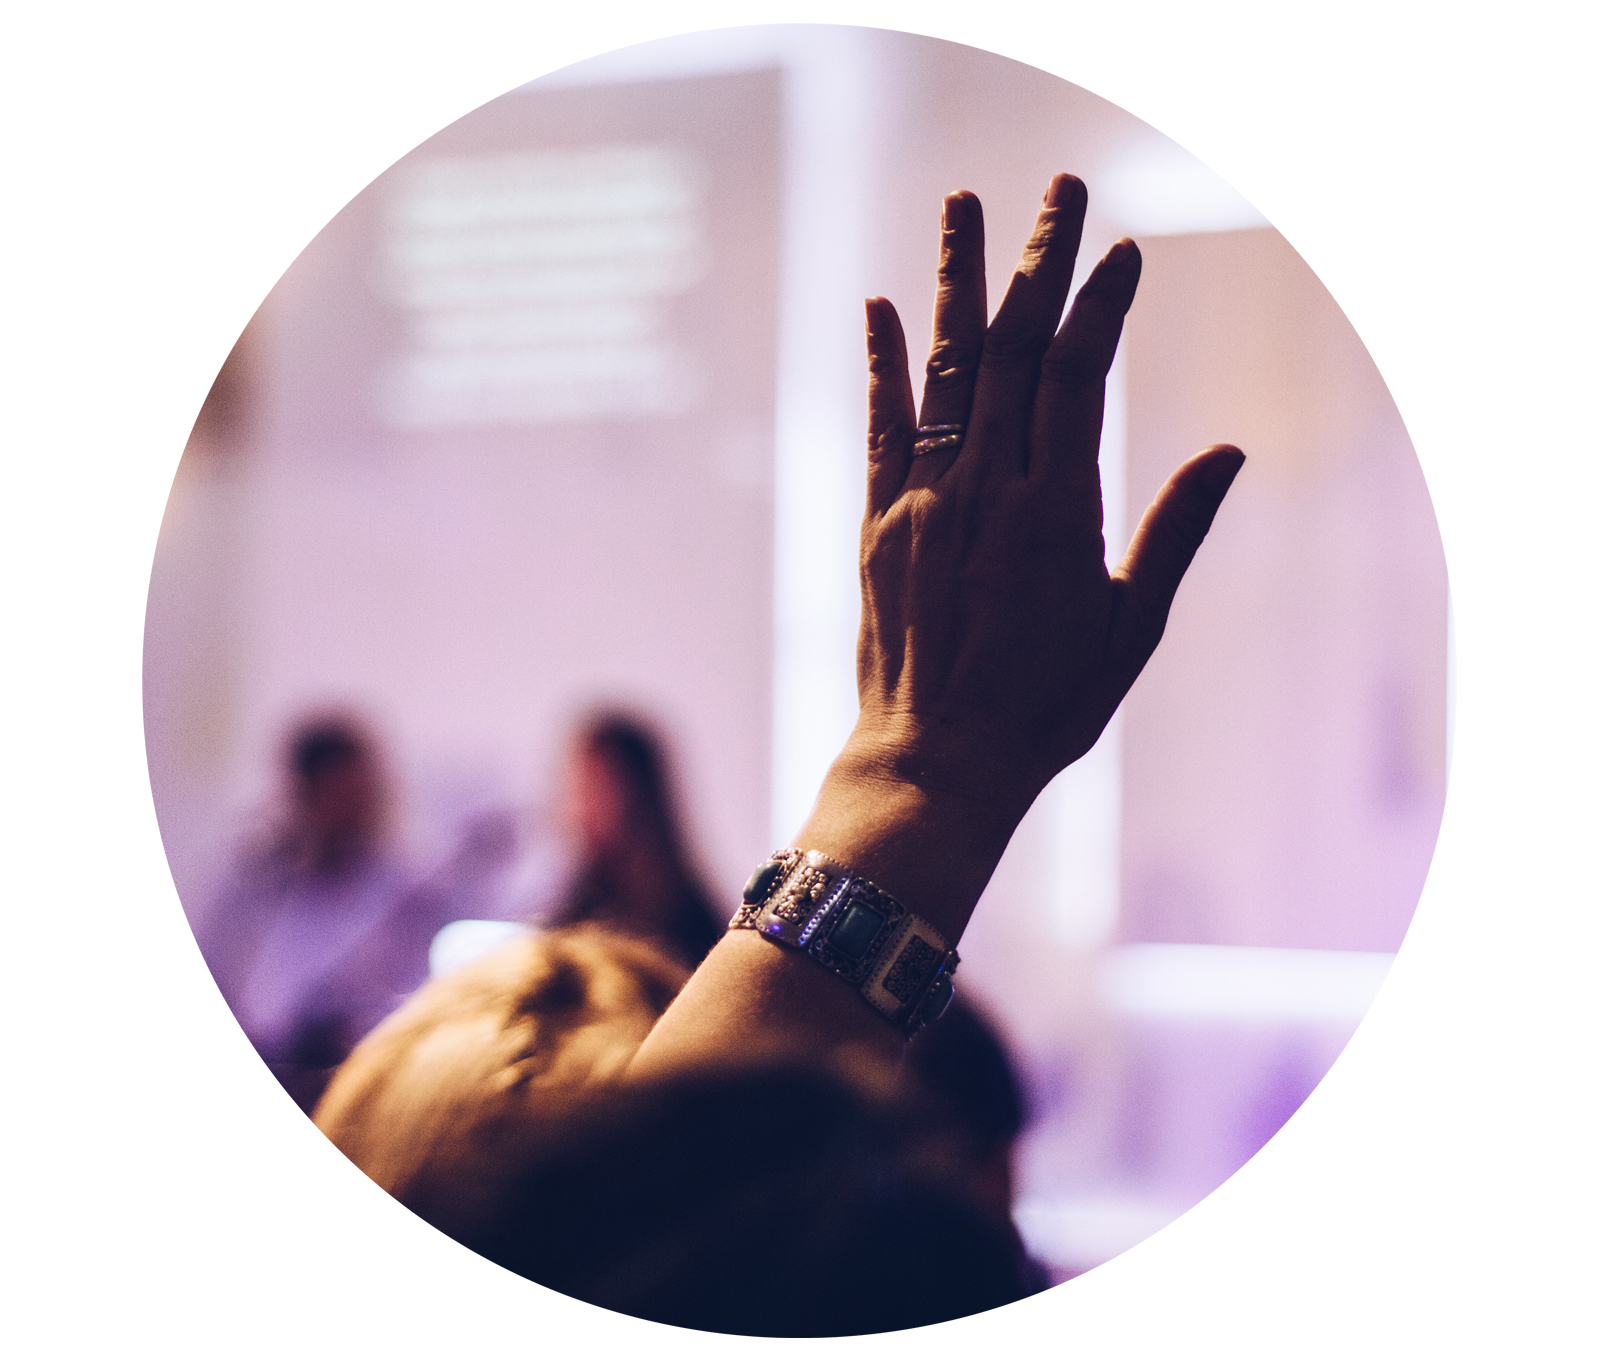 Speaking Engagement Lecture hand up image